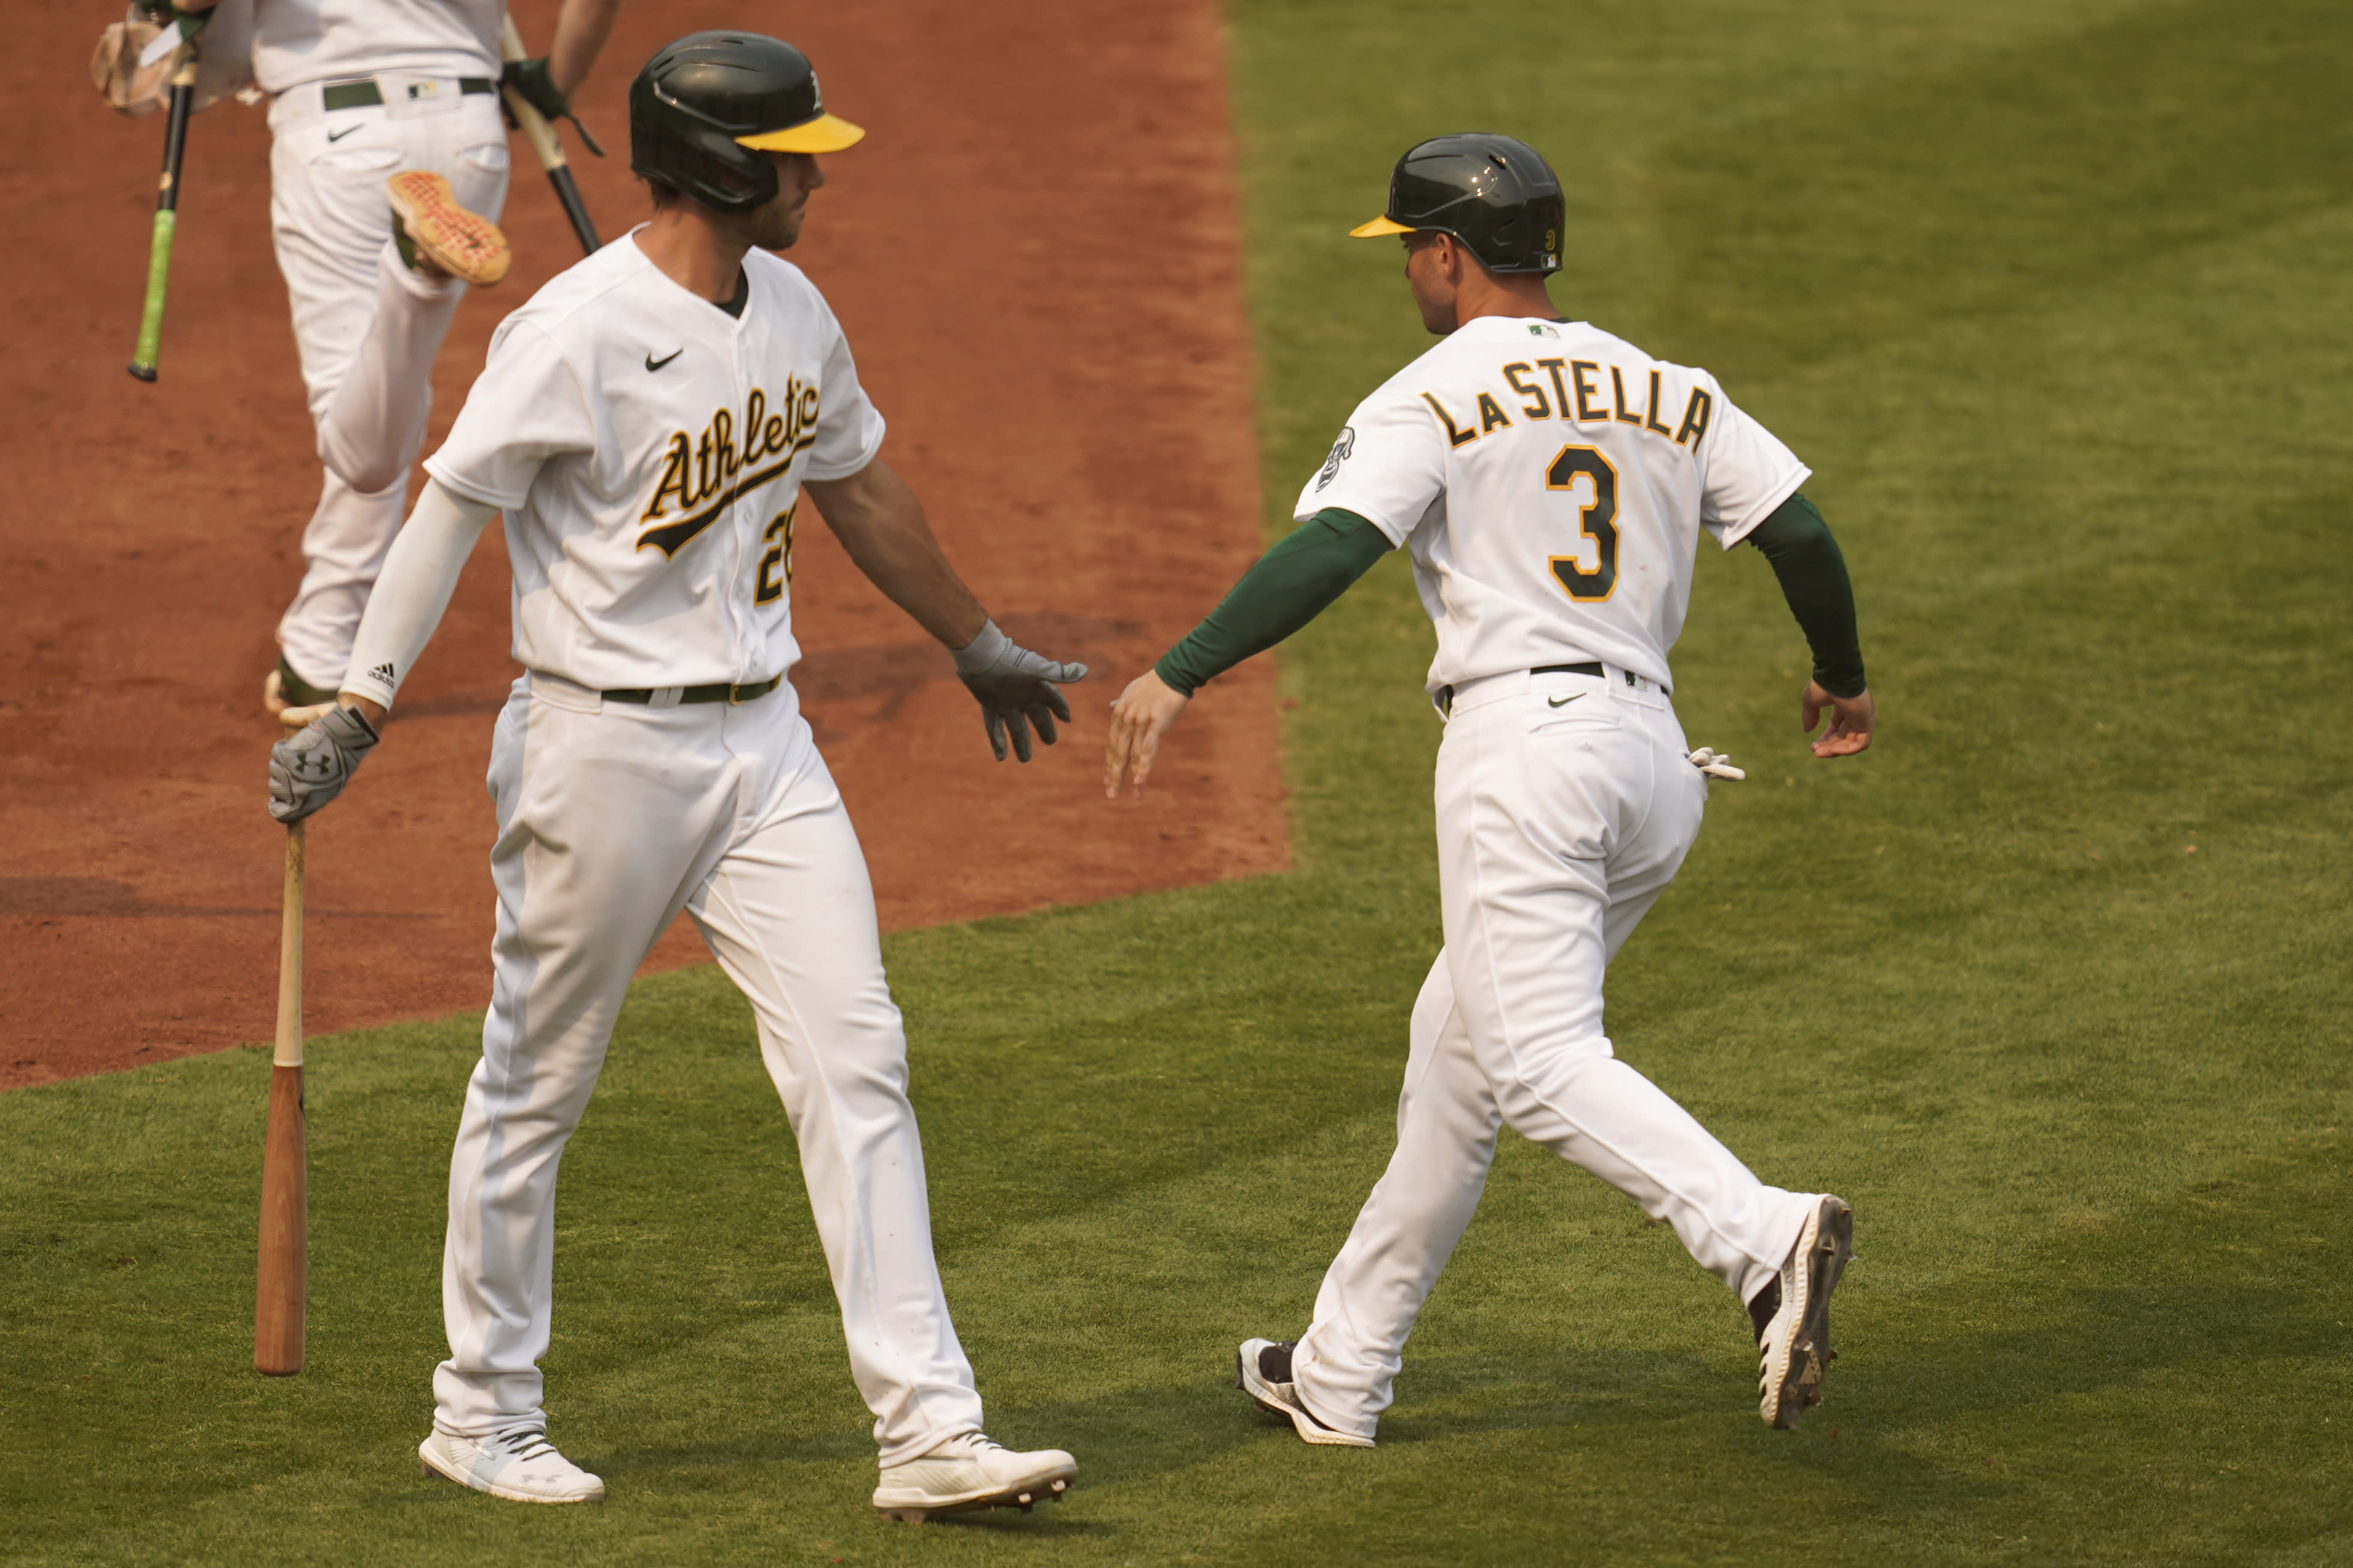 Oakland Athletics' Tommy La Stella (3) is congratulated by Matt Olson after scoring against the Chicago White Sox during the fourth inning of Game 3 of an American League wild-card baseball series Thursday, Oct. 1, 2020, in Oakland, Calif. (AP Photo/Eric Risberg)